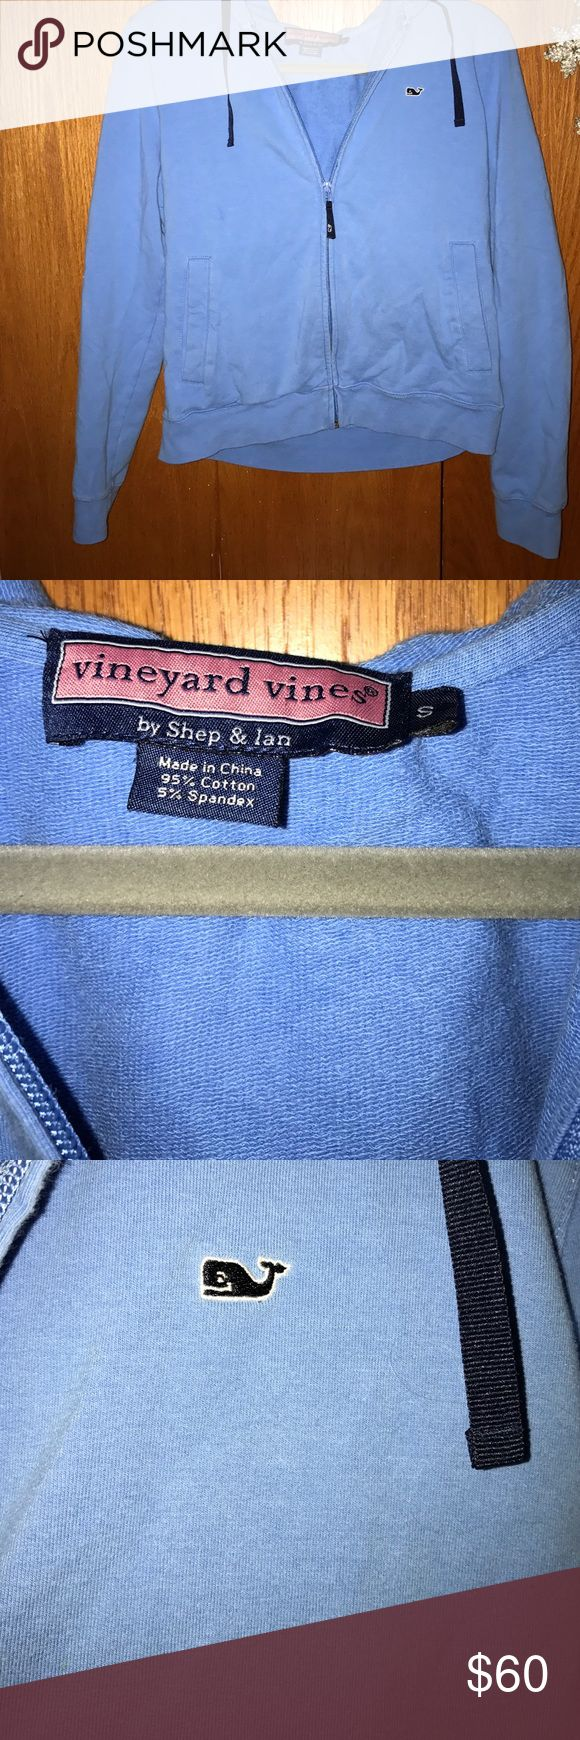 Vineyard vines blue zip up hoodie Worn a couple of times! I'm great condition 😄!! Size small. Has whale on the right side of jacket Vineyard Vines Jackets & Coats